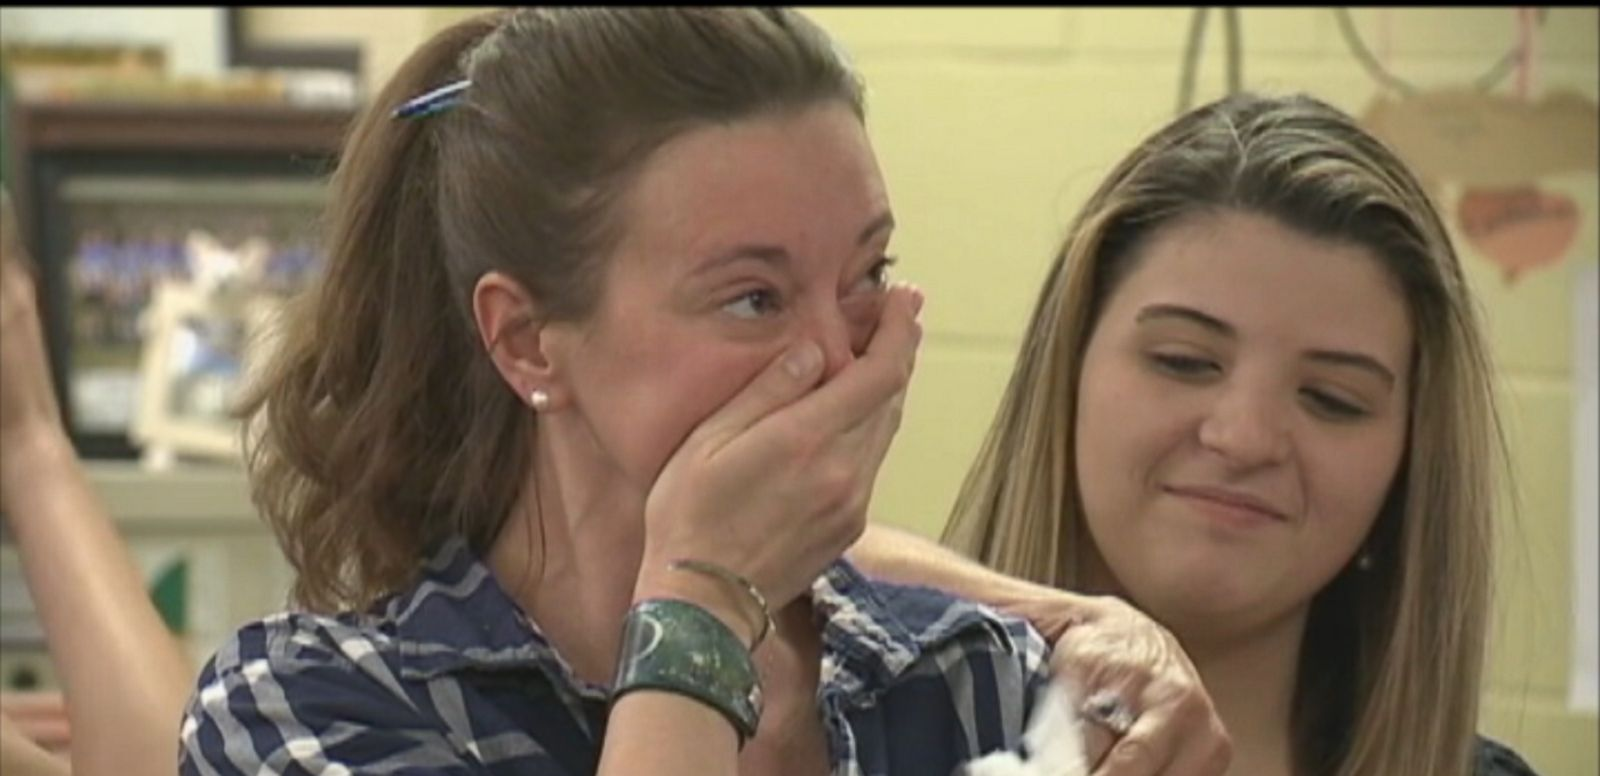 VIDEO: Students at a New Hampshire high school are donating class trip money to their principal who was recently diagnosed with cancer.